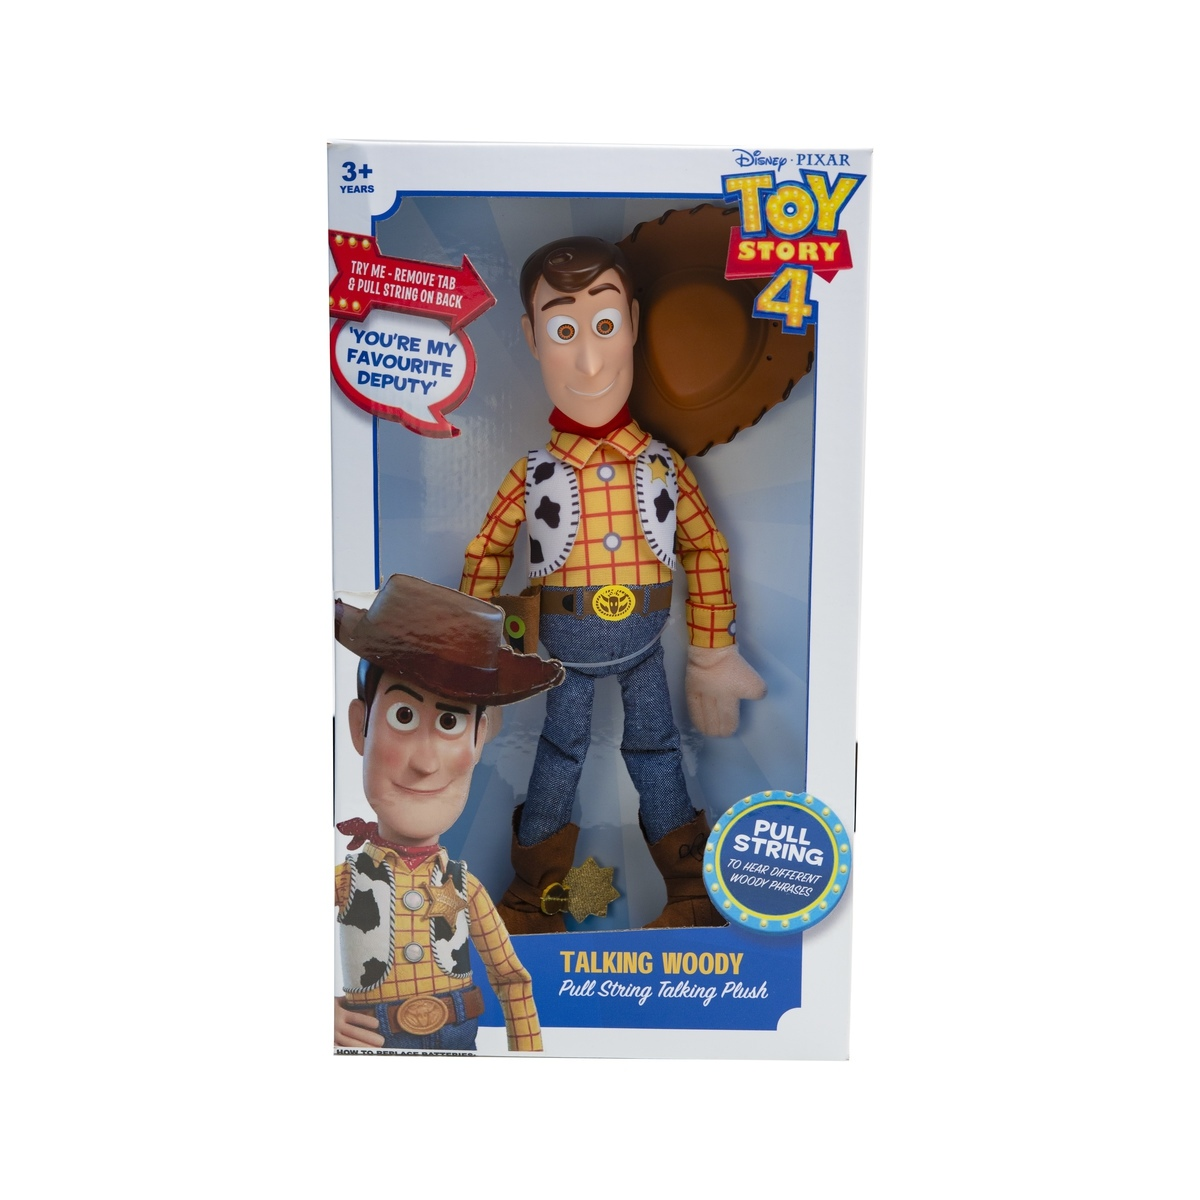 Toy Story 4 Pull String Plush Talking Woody